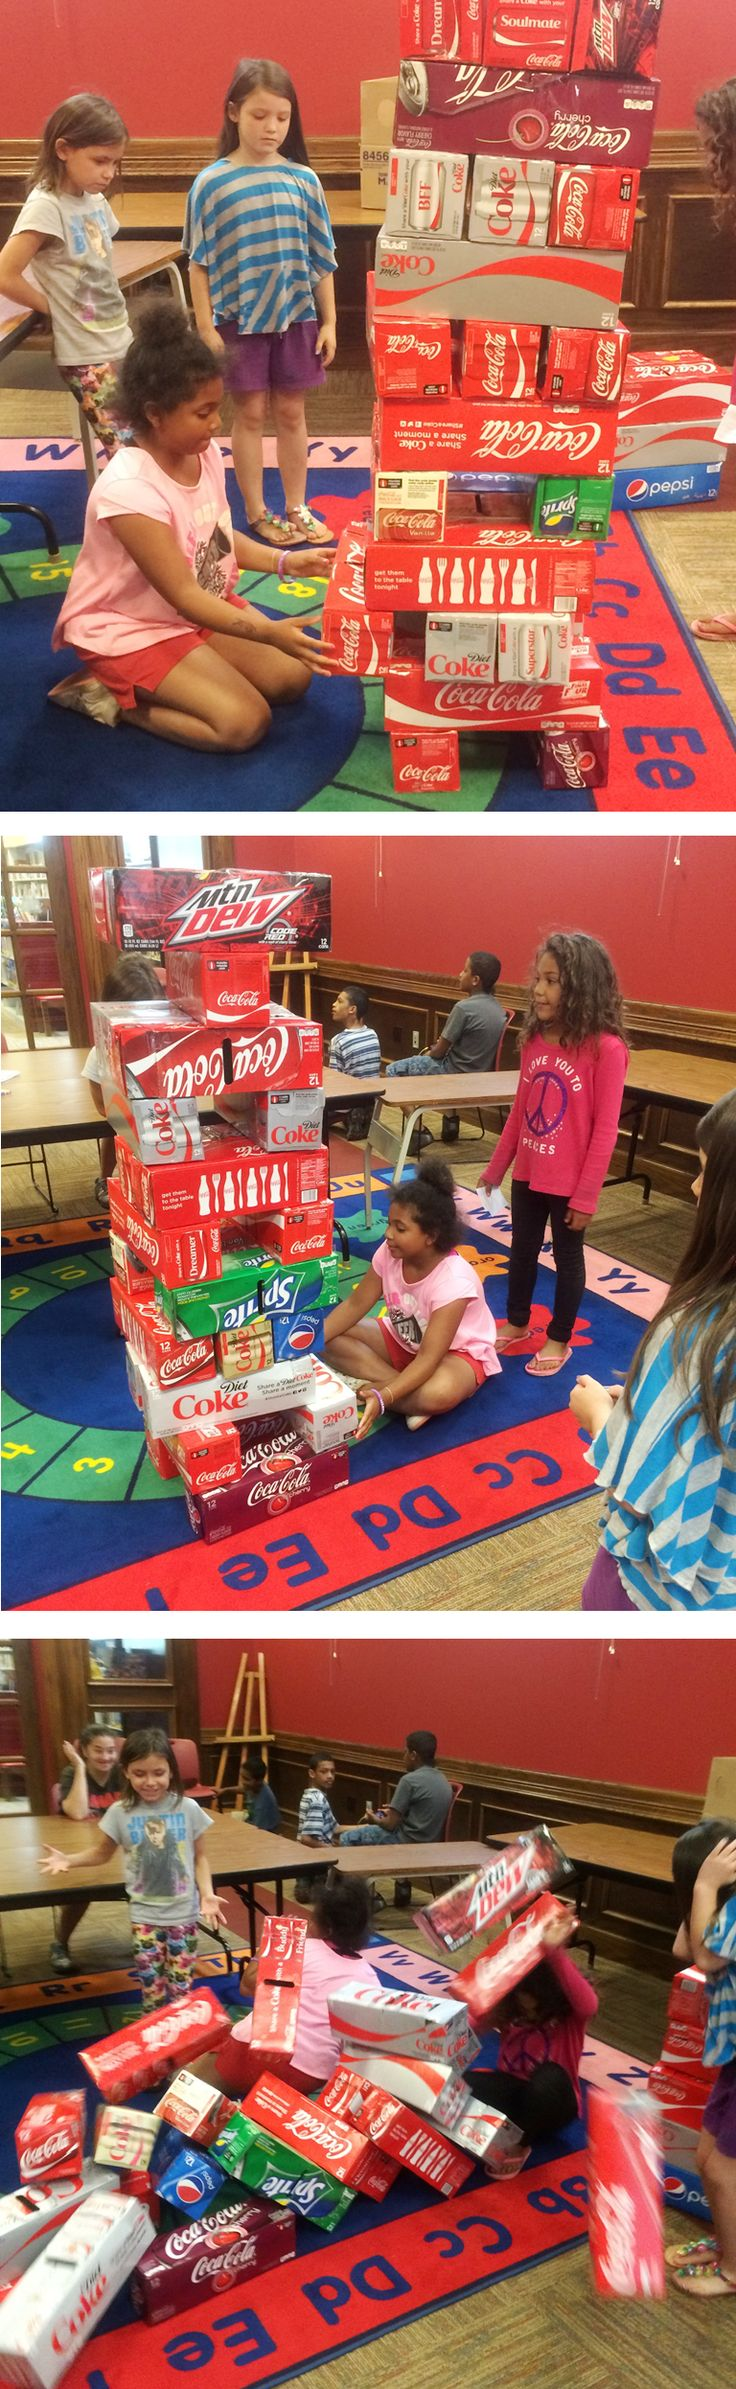 Why spend the money on a giant Jenga set, when you can reuse, reduce, and recycle one from old soda cartons?! The Library often hosts giant games programs using found or reclaimed items! Check out our